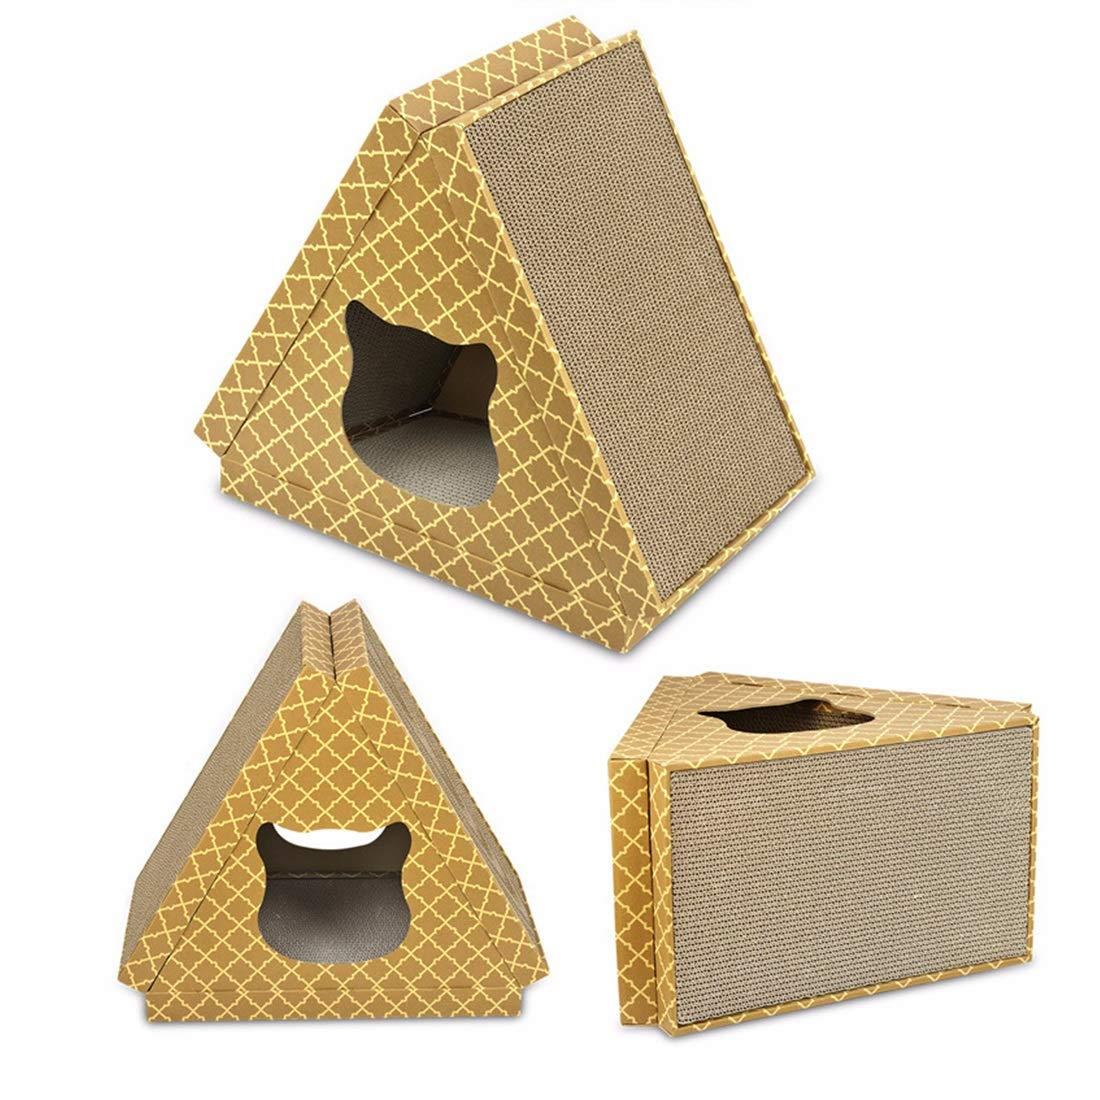 Triangular flat pattern cat house LiShihuan Four Seasons Triangle Flat Cat House Cat Scratch Board Cat Pet Claw Toy Cat Litter (color   Triangular flat pattern cat house)